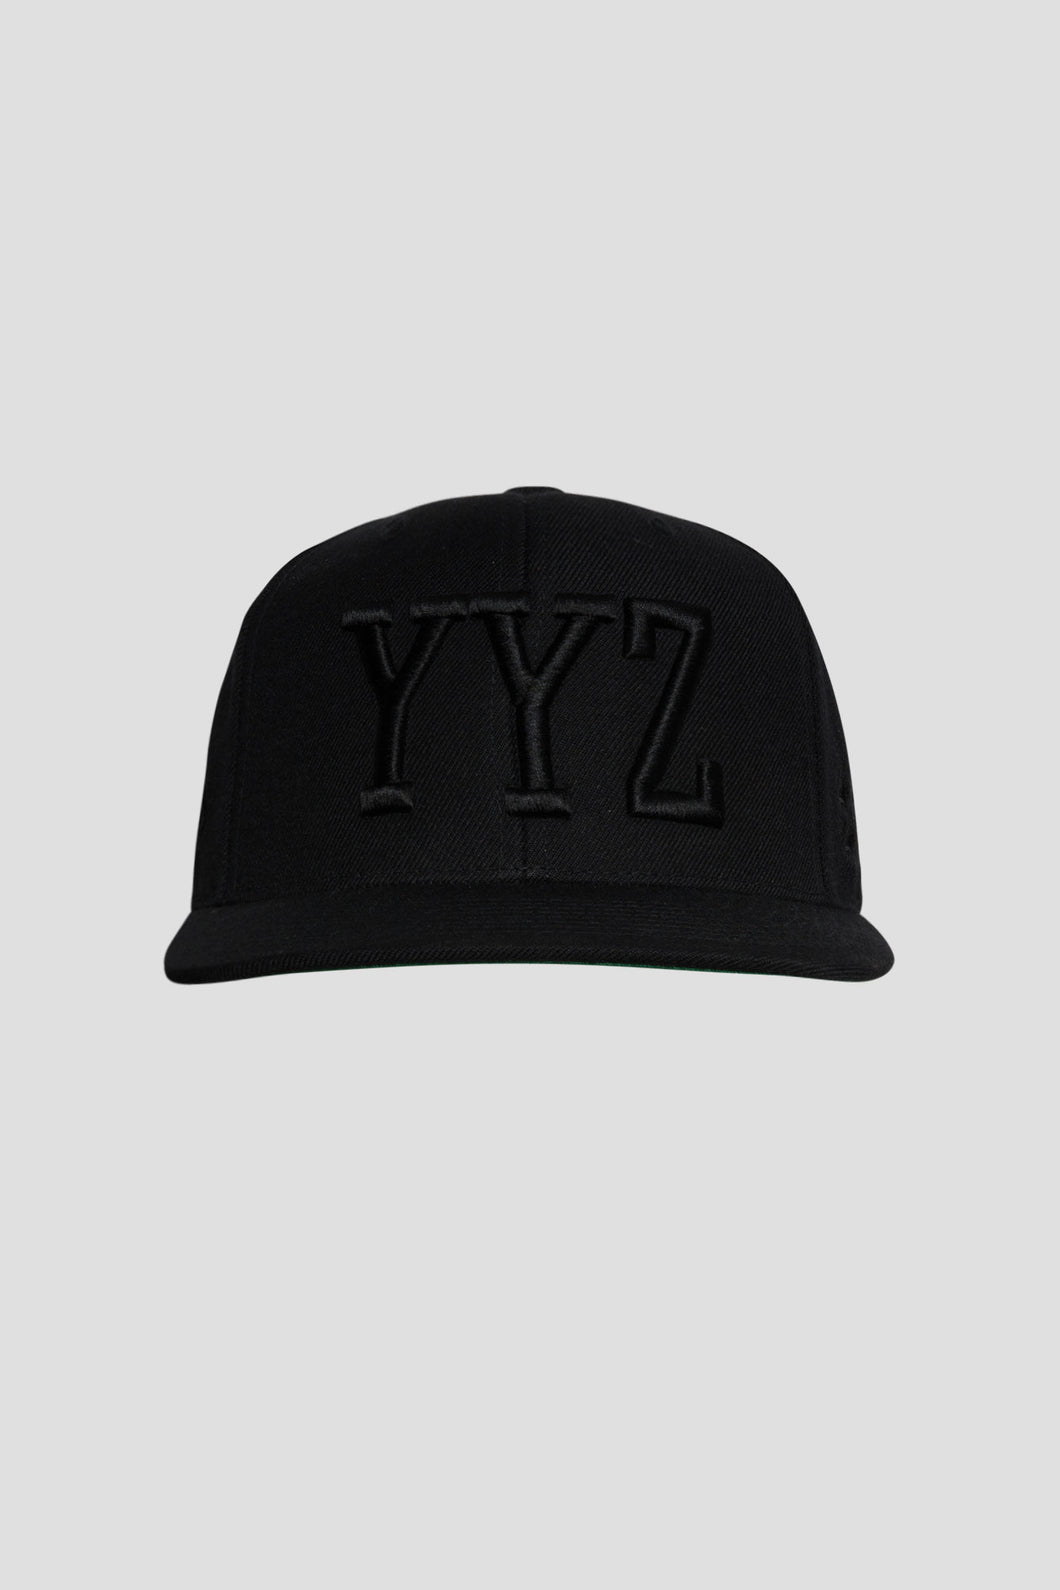 YYZ Hat (Black/Black)